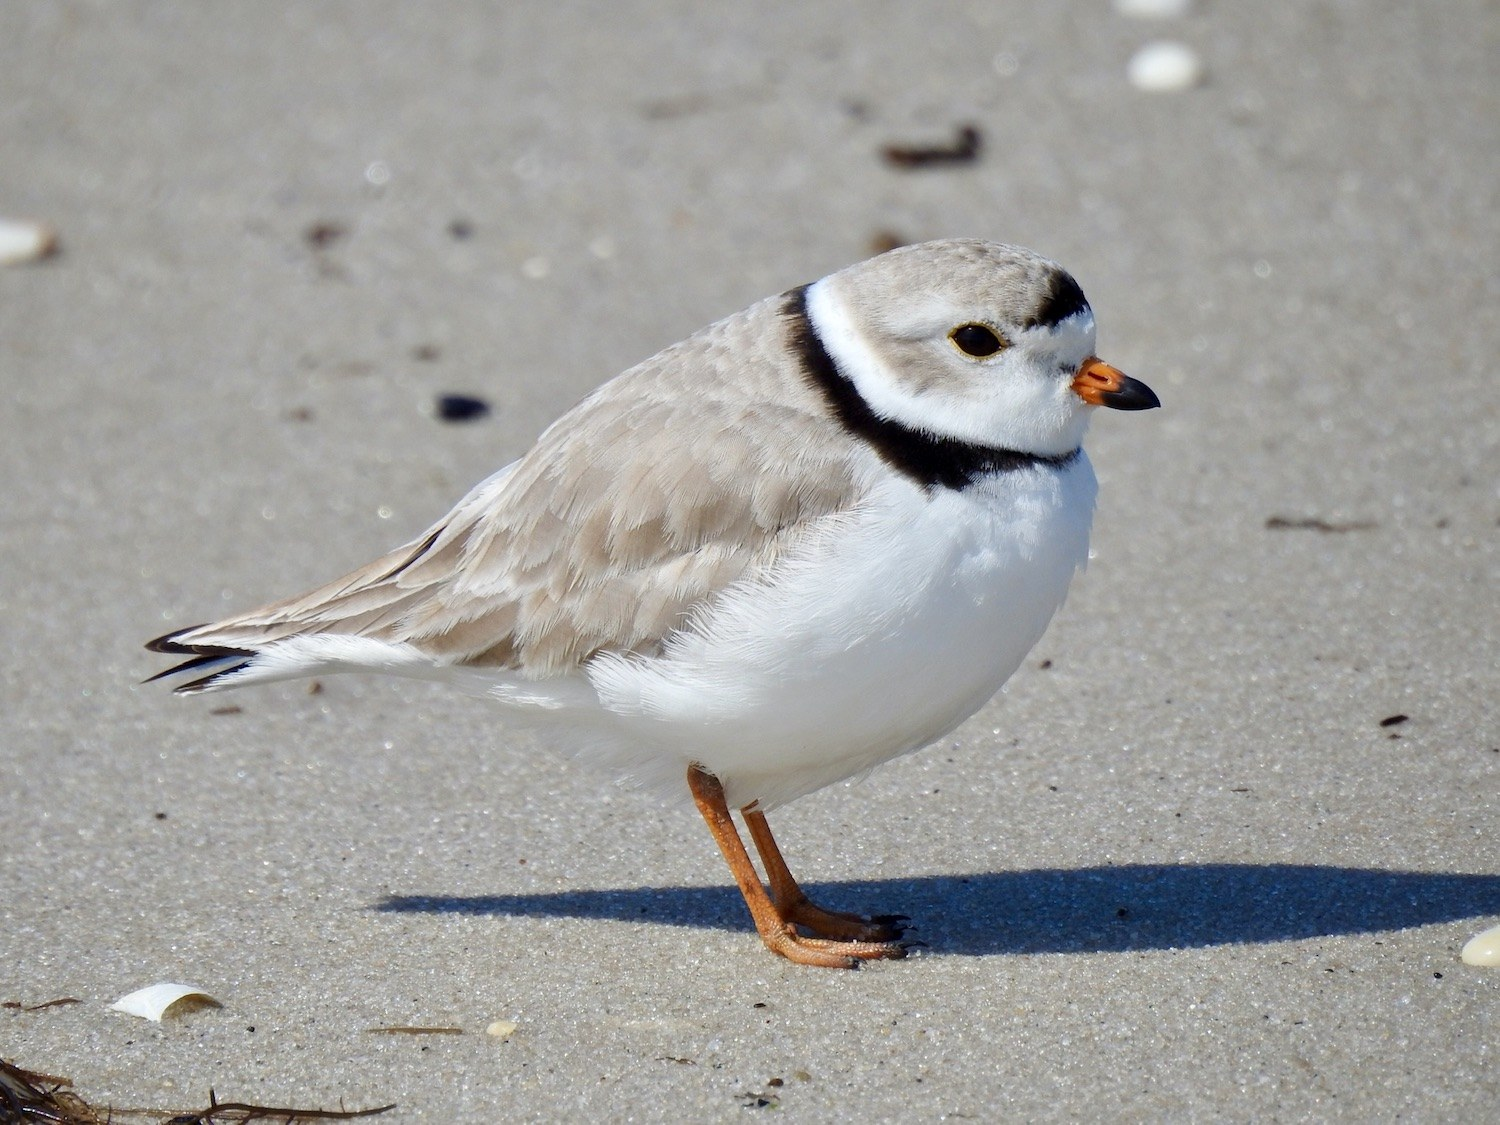 Piping Plover by Marian McSherry